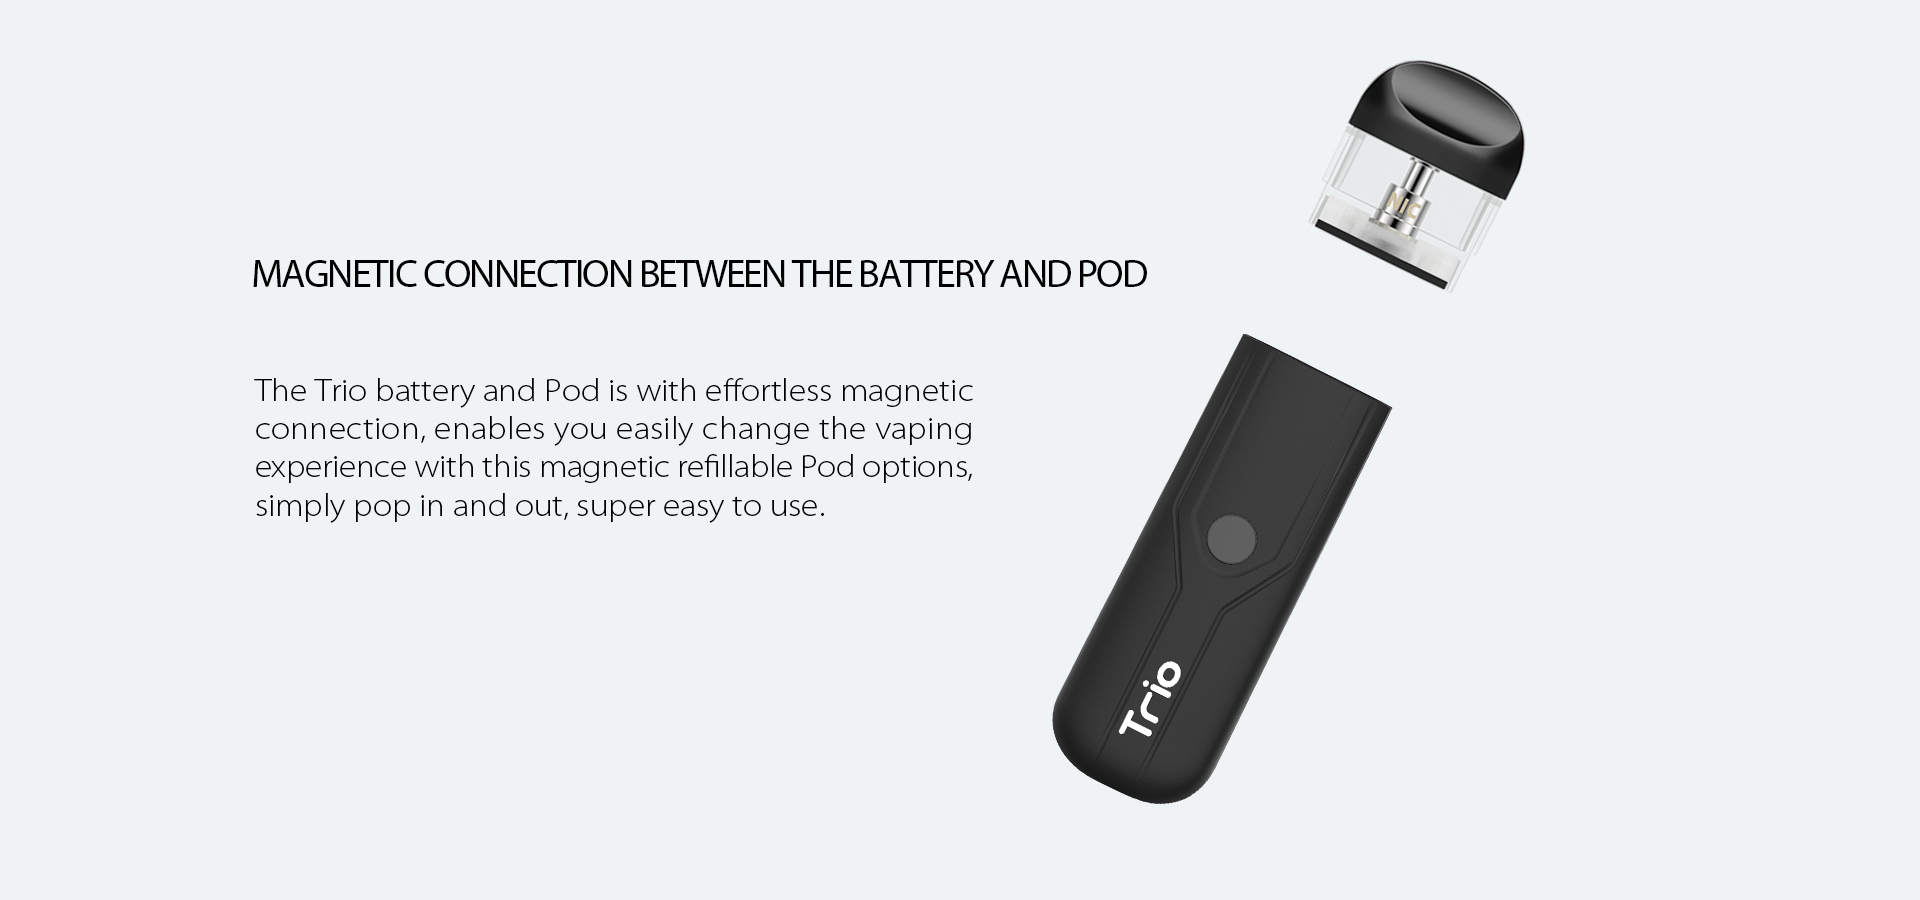 Yocan Trio Vape Pen Magnetic Connection Between the Battery and Pod